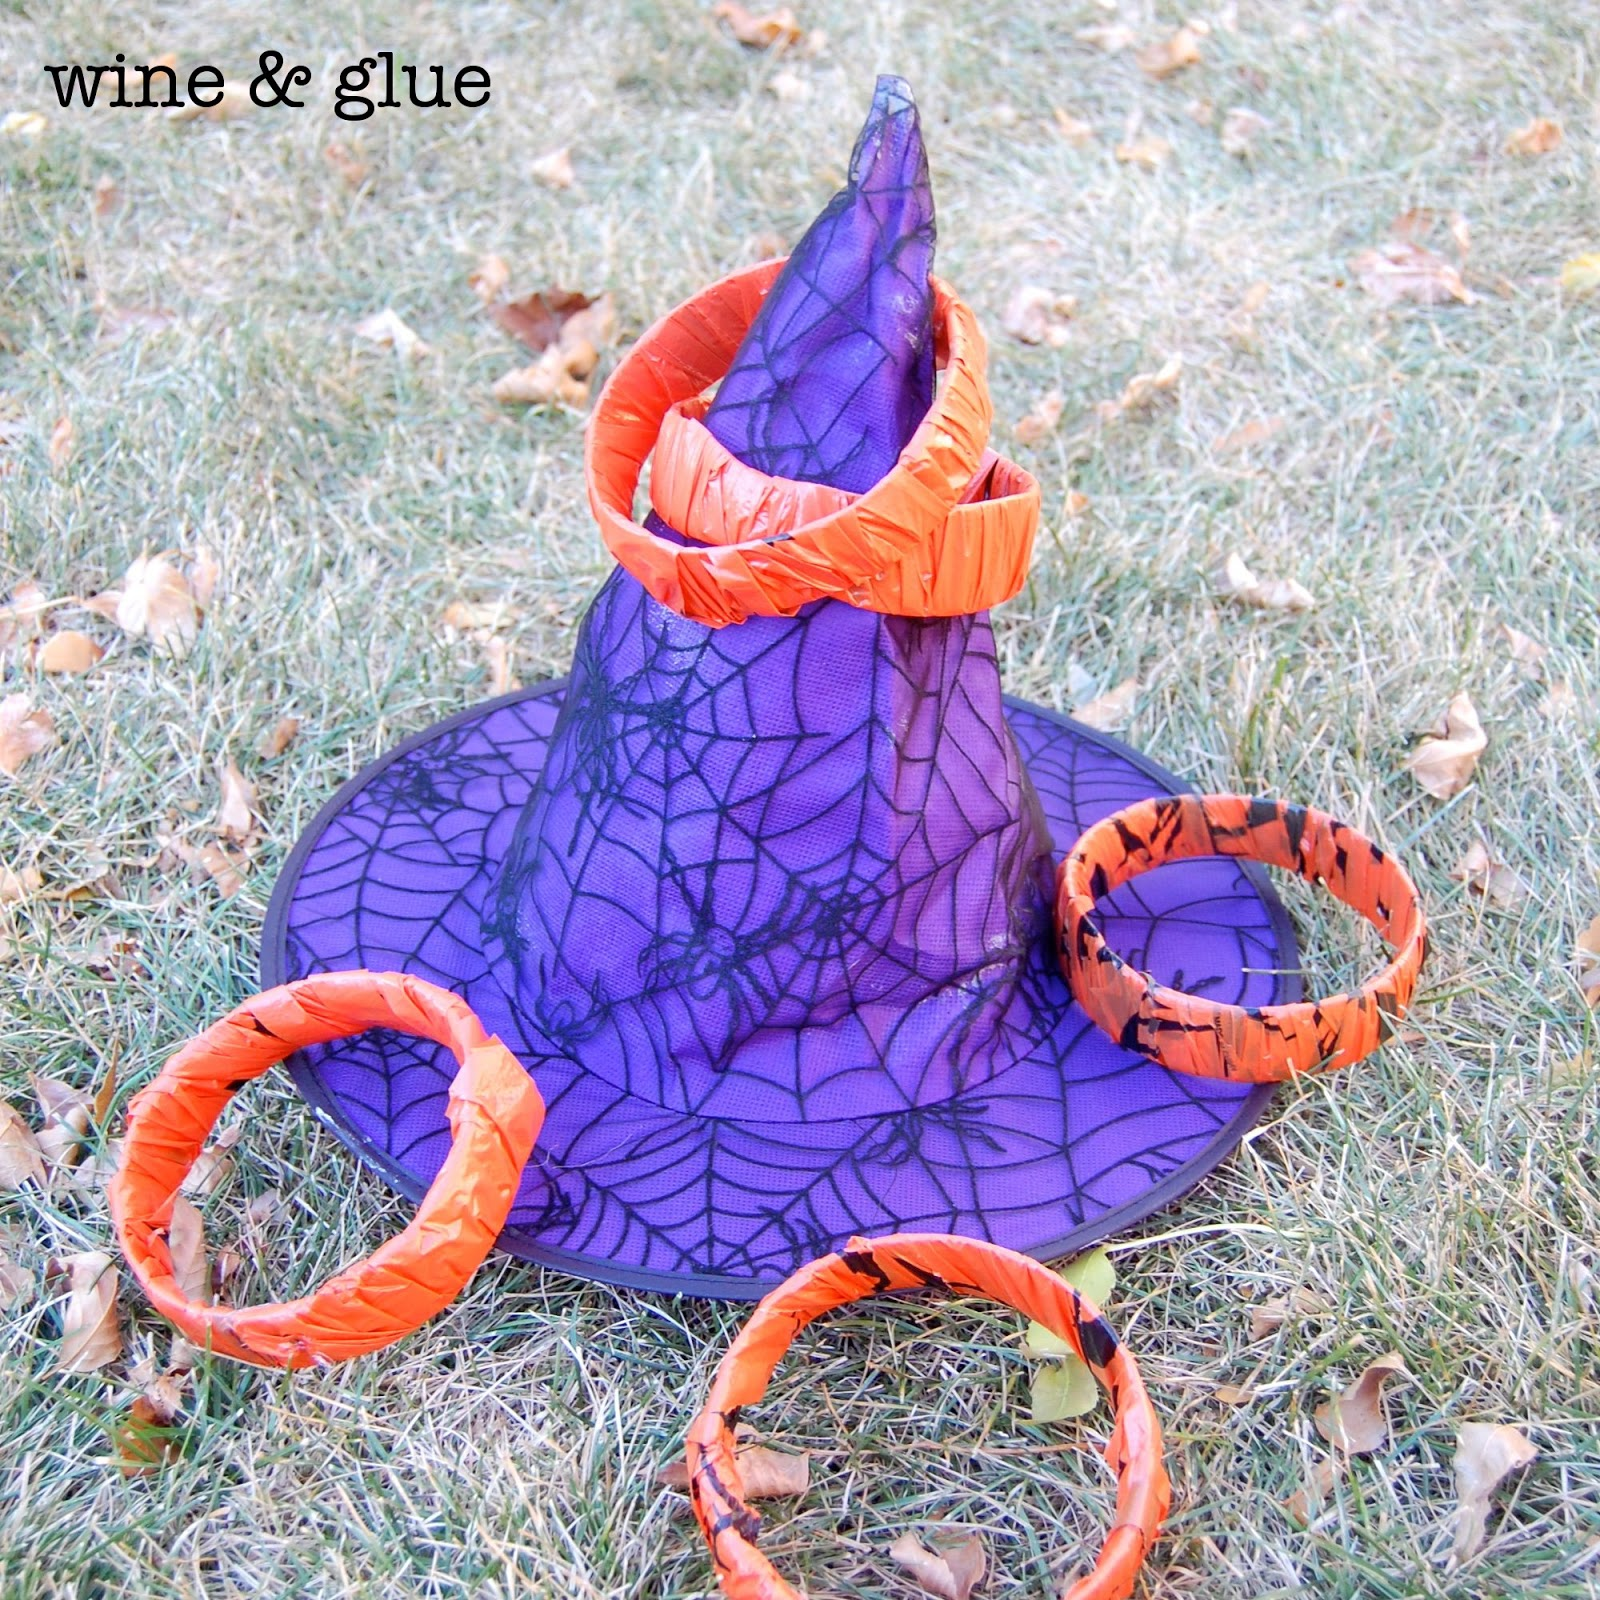 Homemade Halloween Games - Wine & Glue